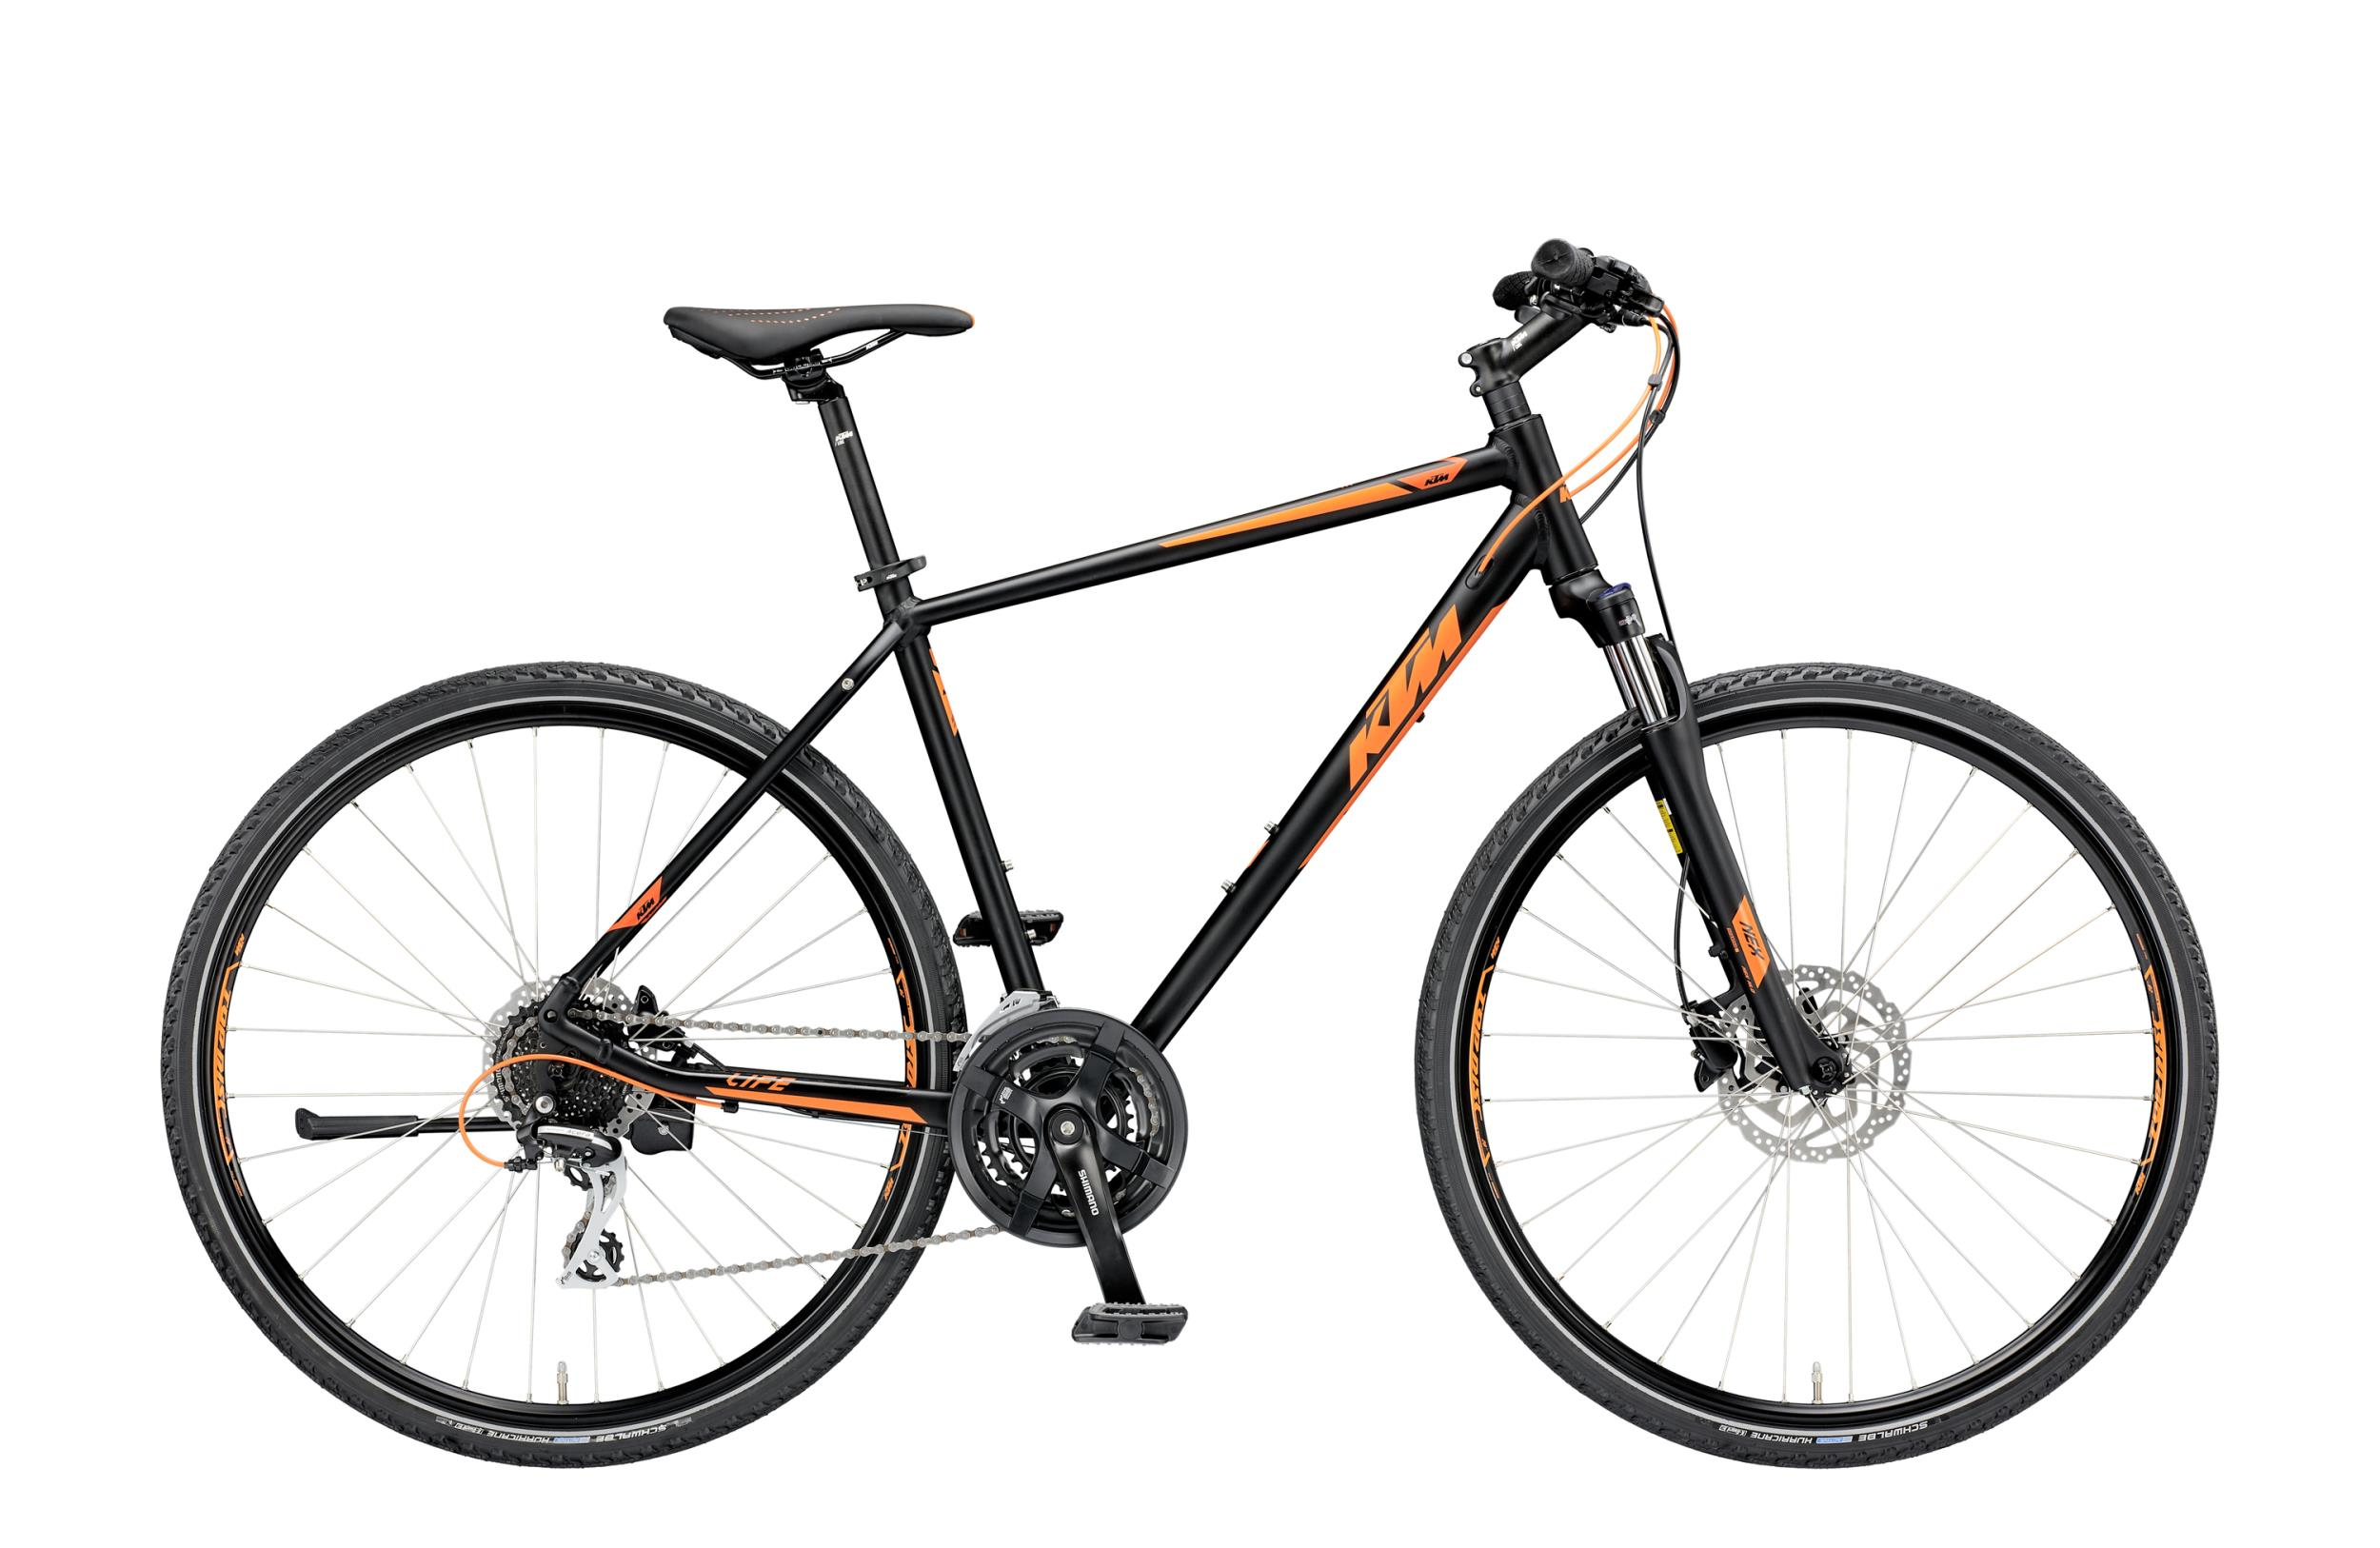 KTM LIFE TRACK 24 Disc - Disc HE 28 - black matt (orange) 51 cm